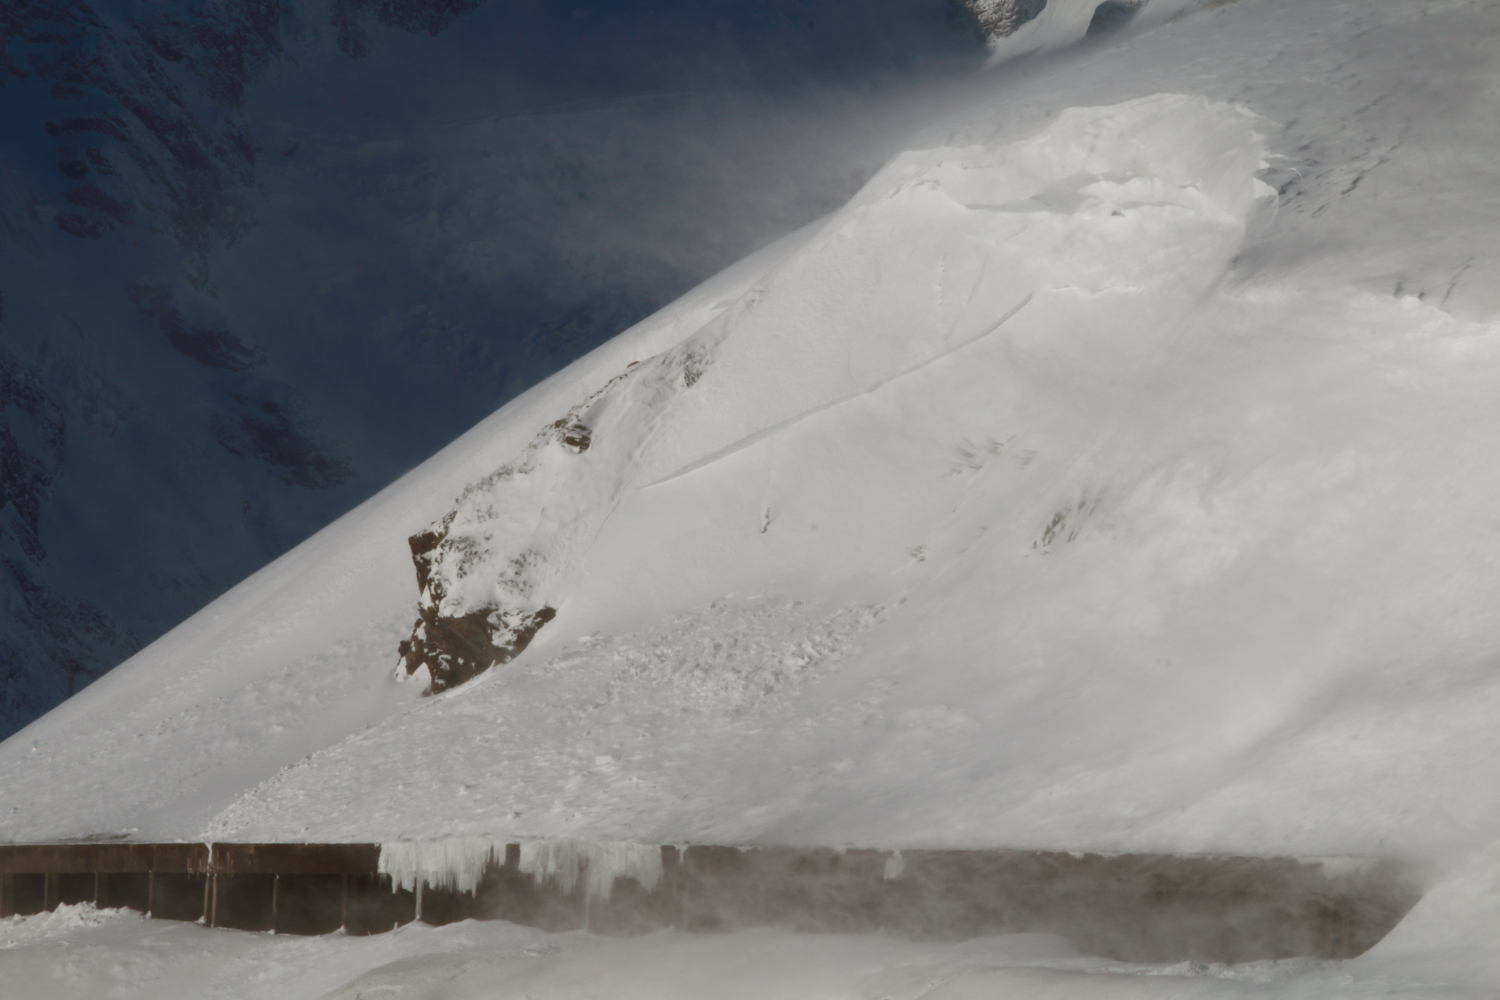 Avalanche Oisans - Photo 1